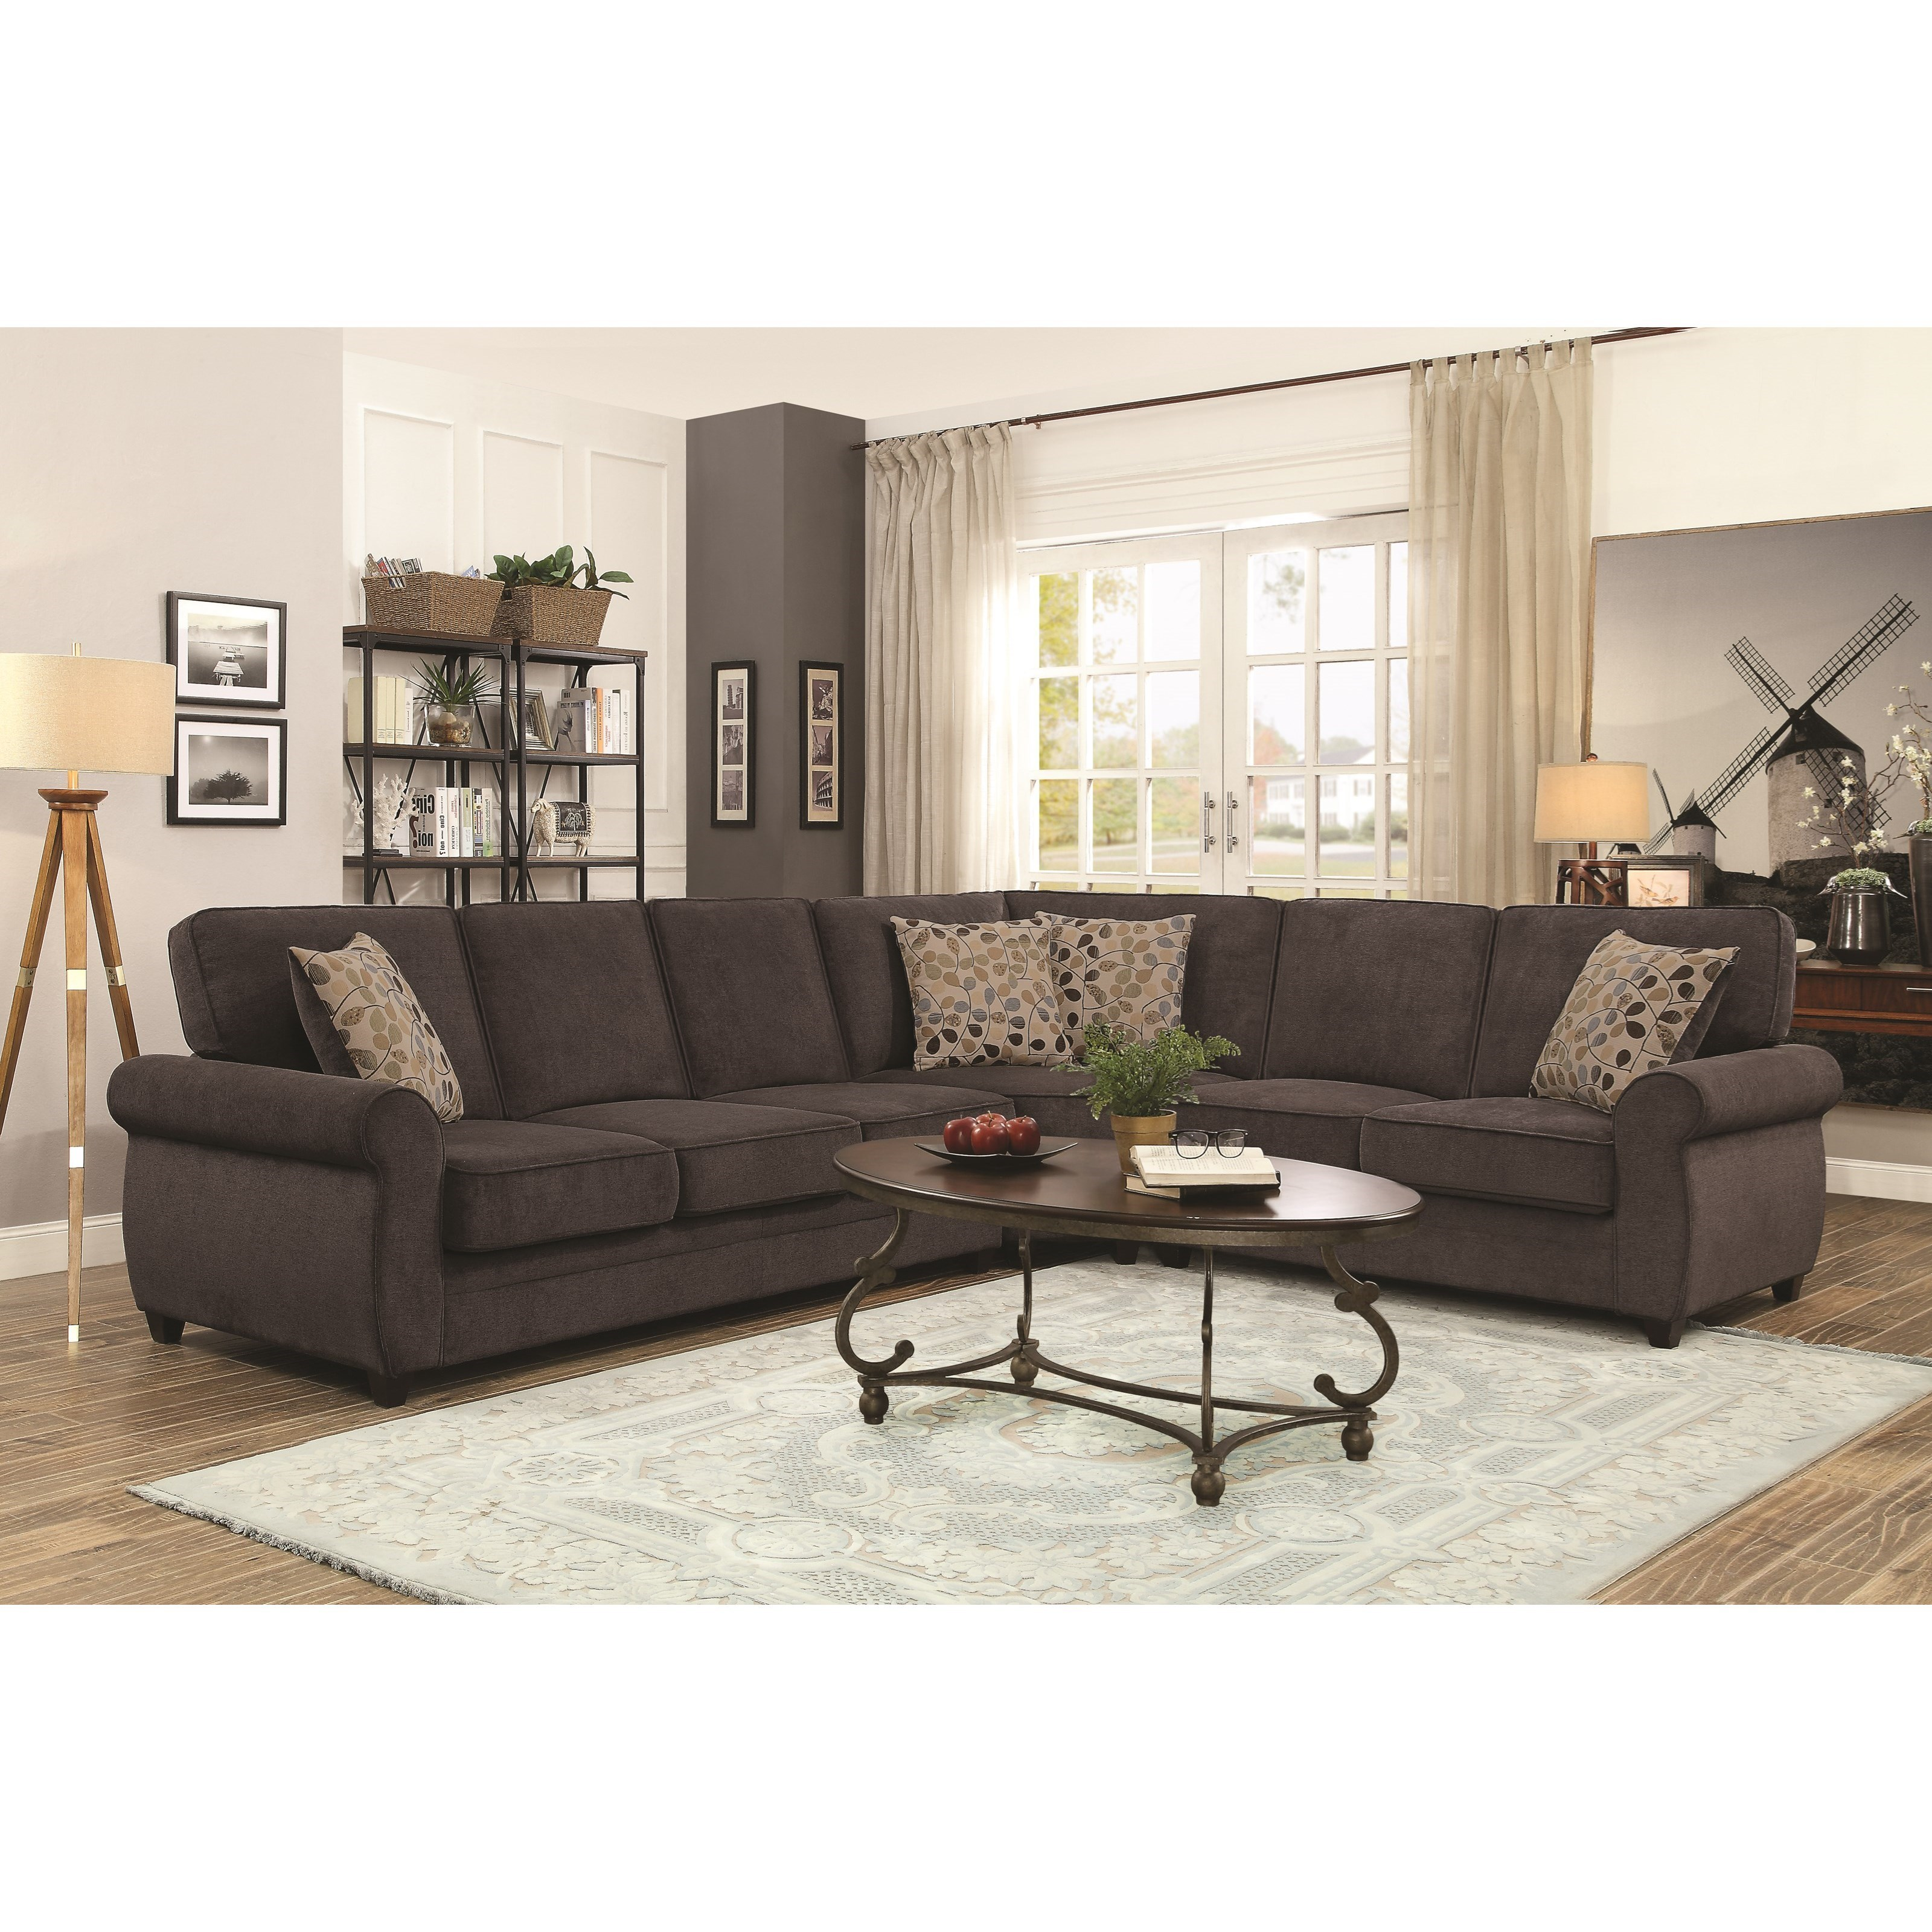 Coaster Kendrick Sectional With Memory Foam Sleeper   Adcock Furniture   Sectional  Sofas